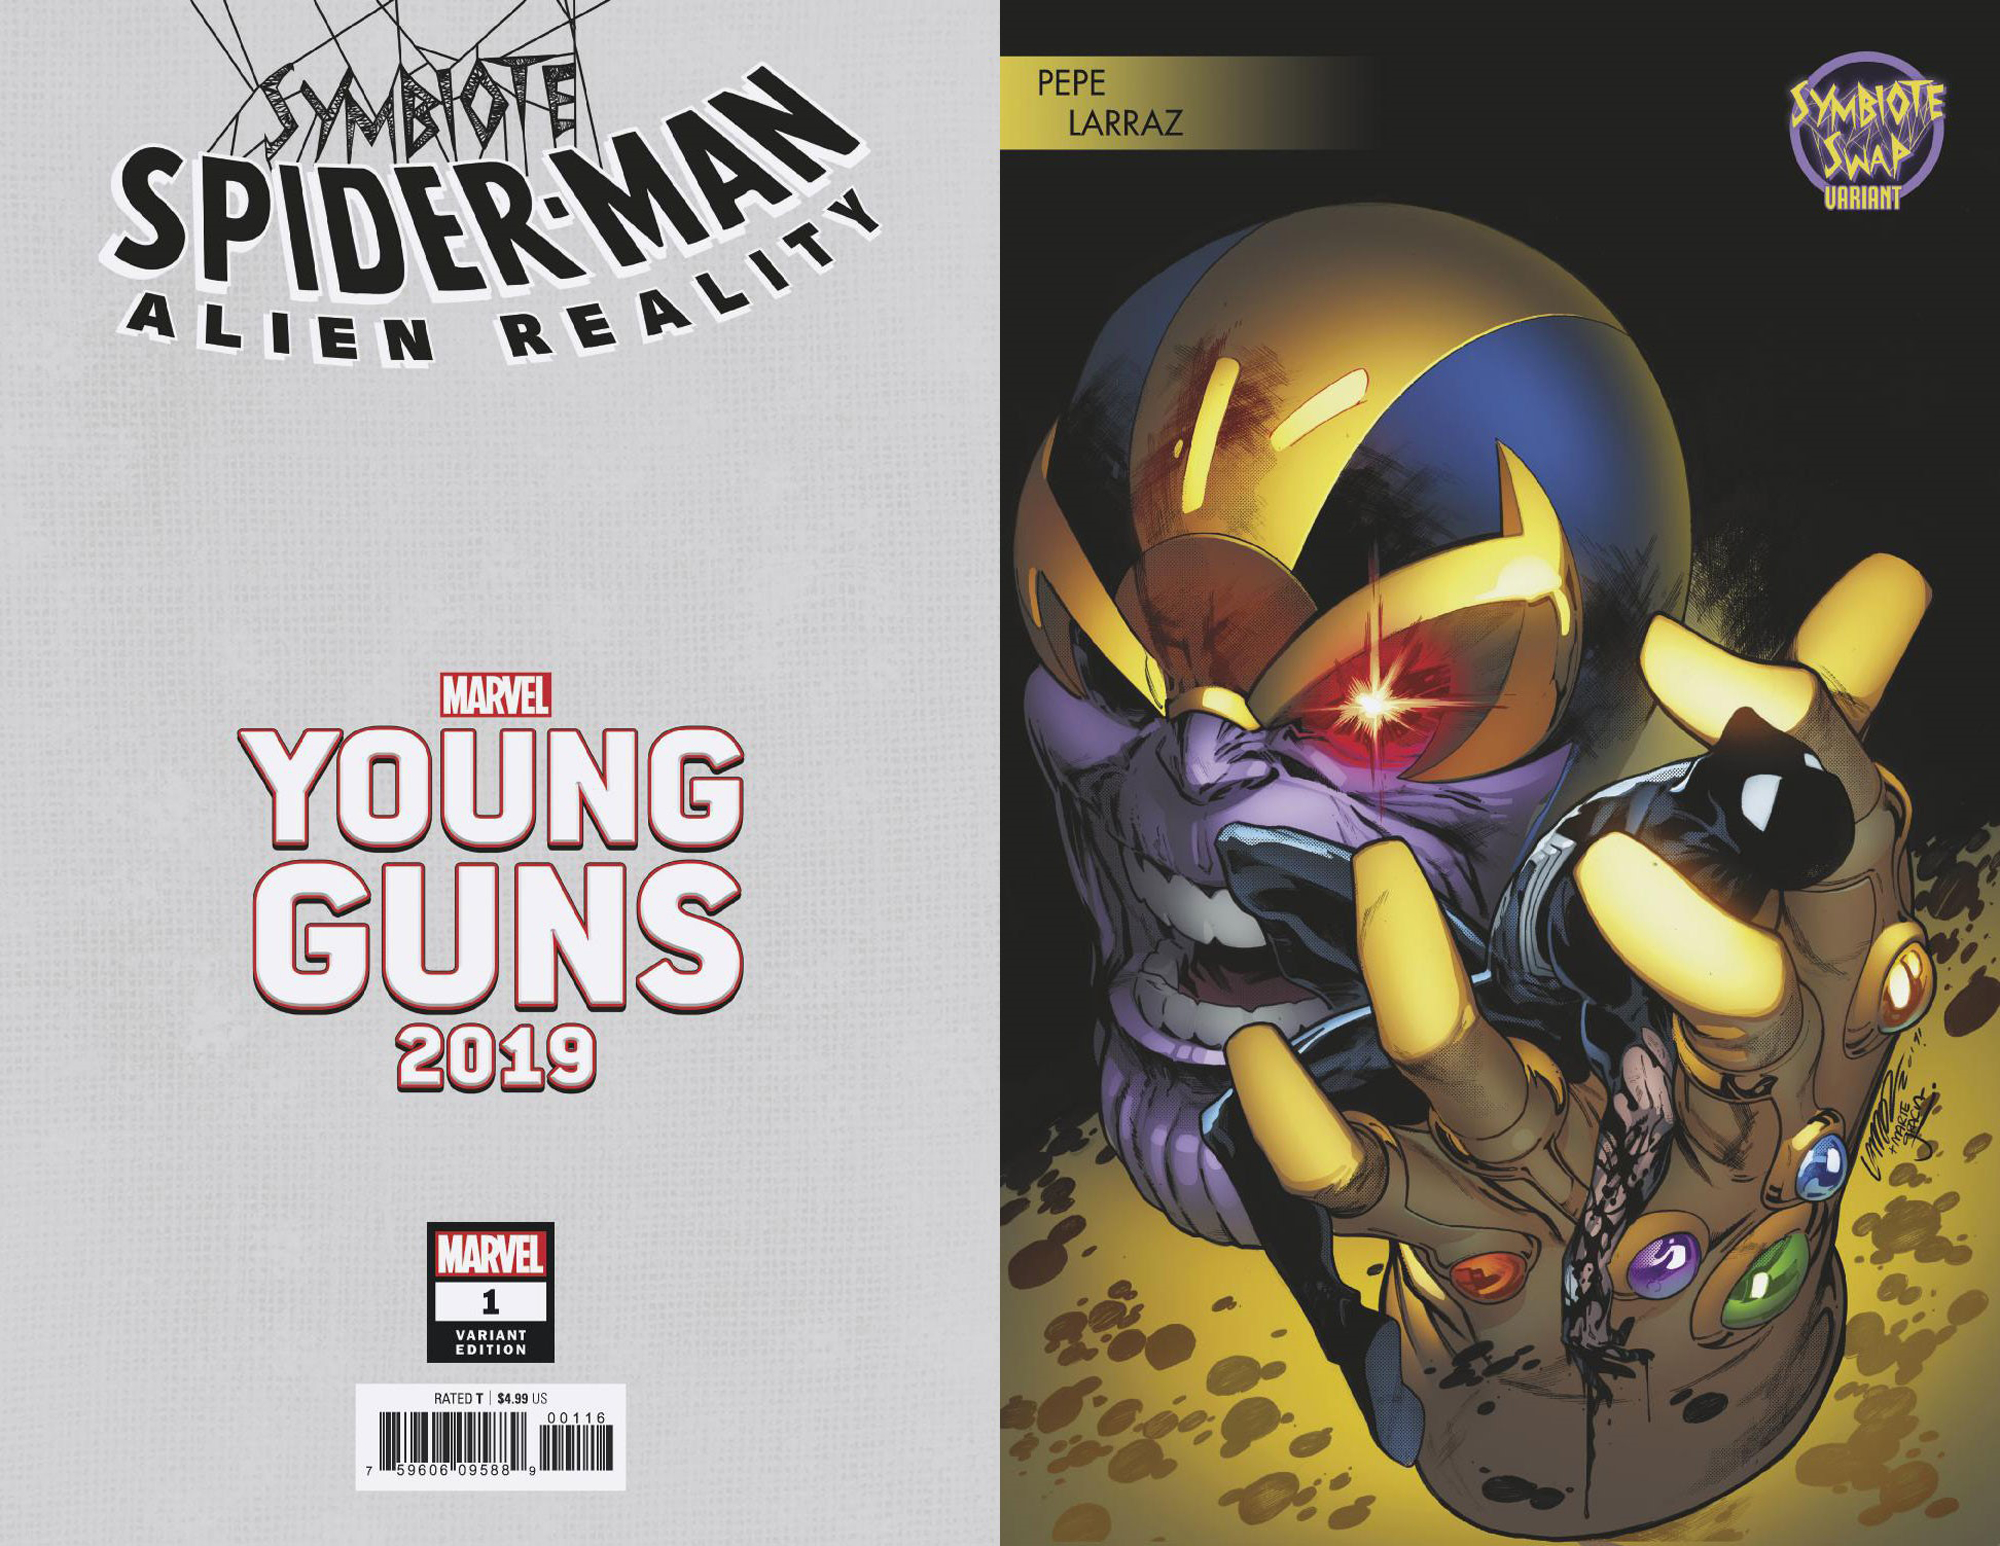 SYMBIOTE SPIDER-MAN ALIEN REALITY #1 (OF 5) LARRAZ YOUNG GUN